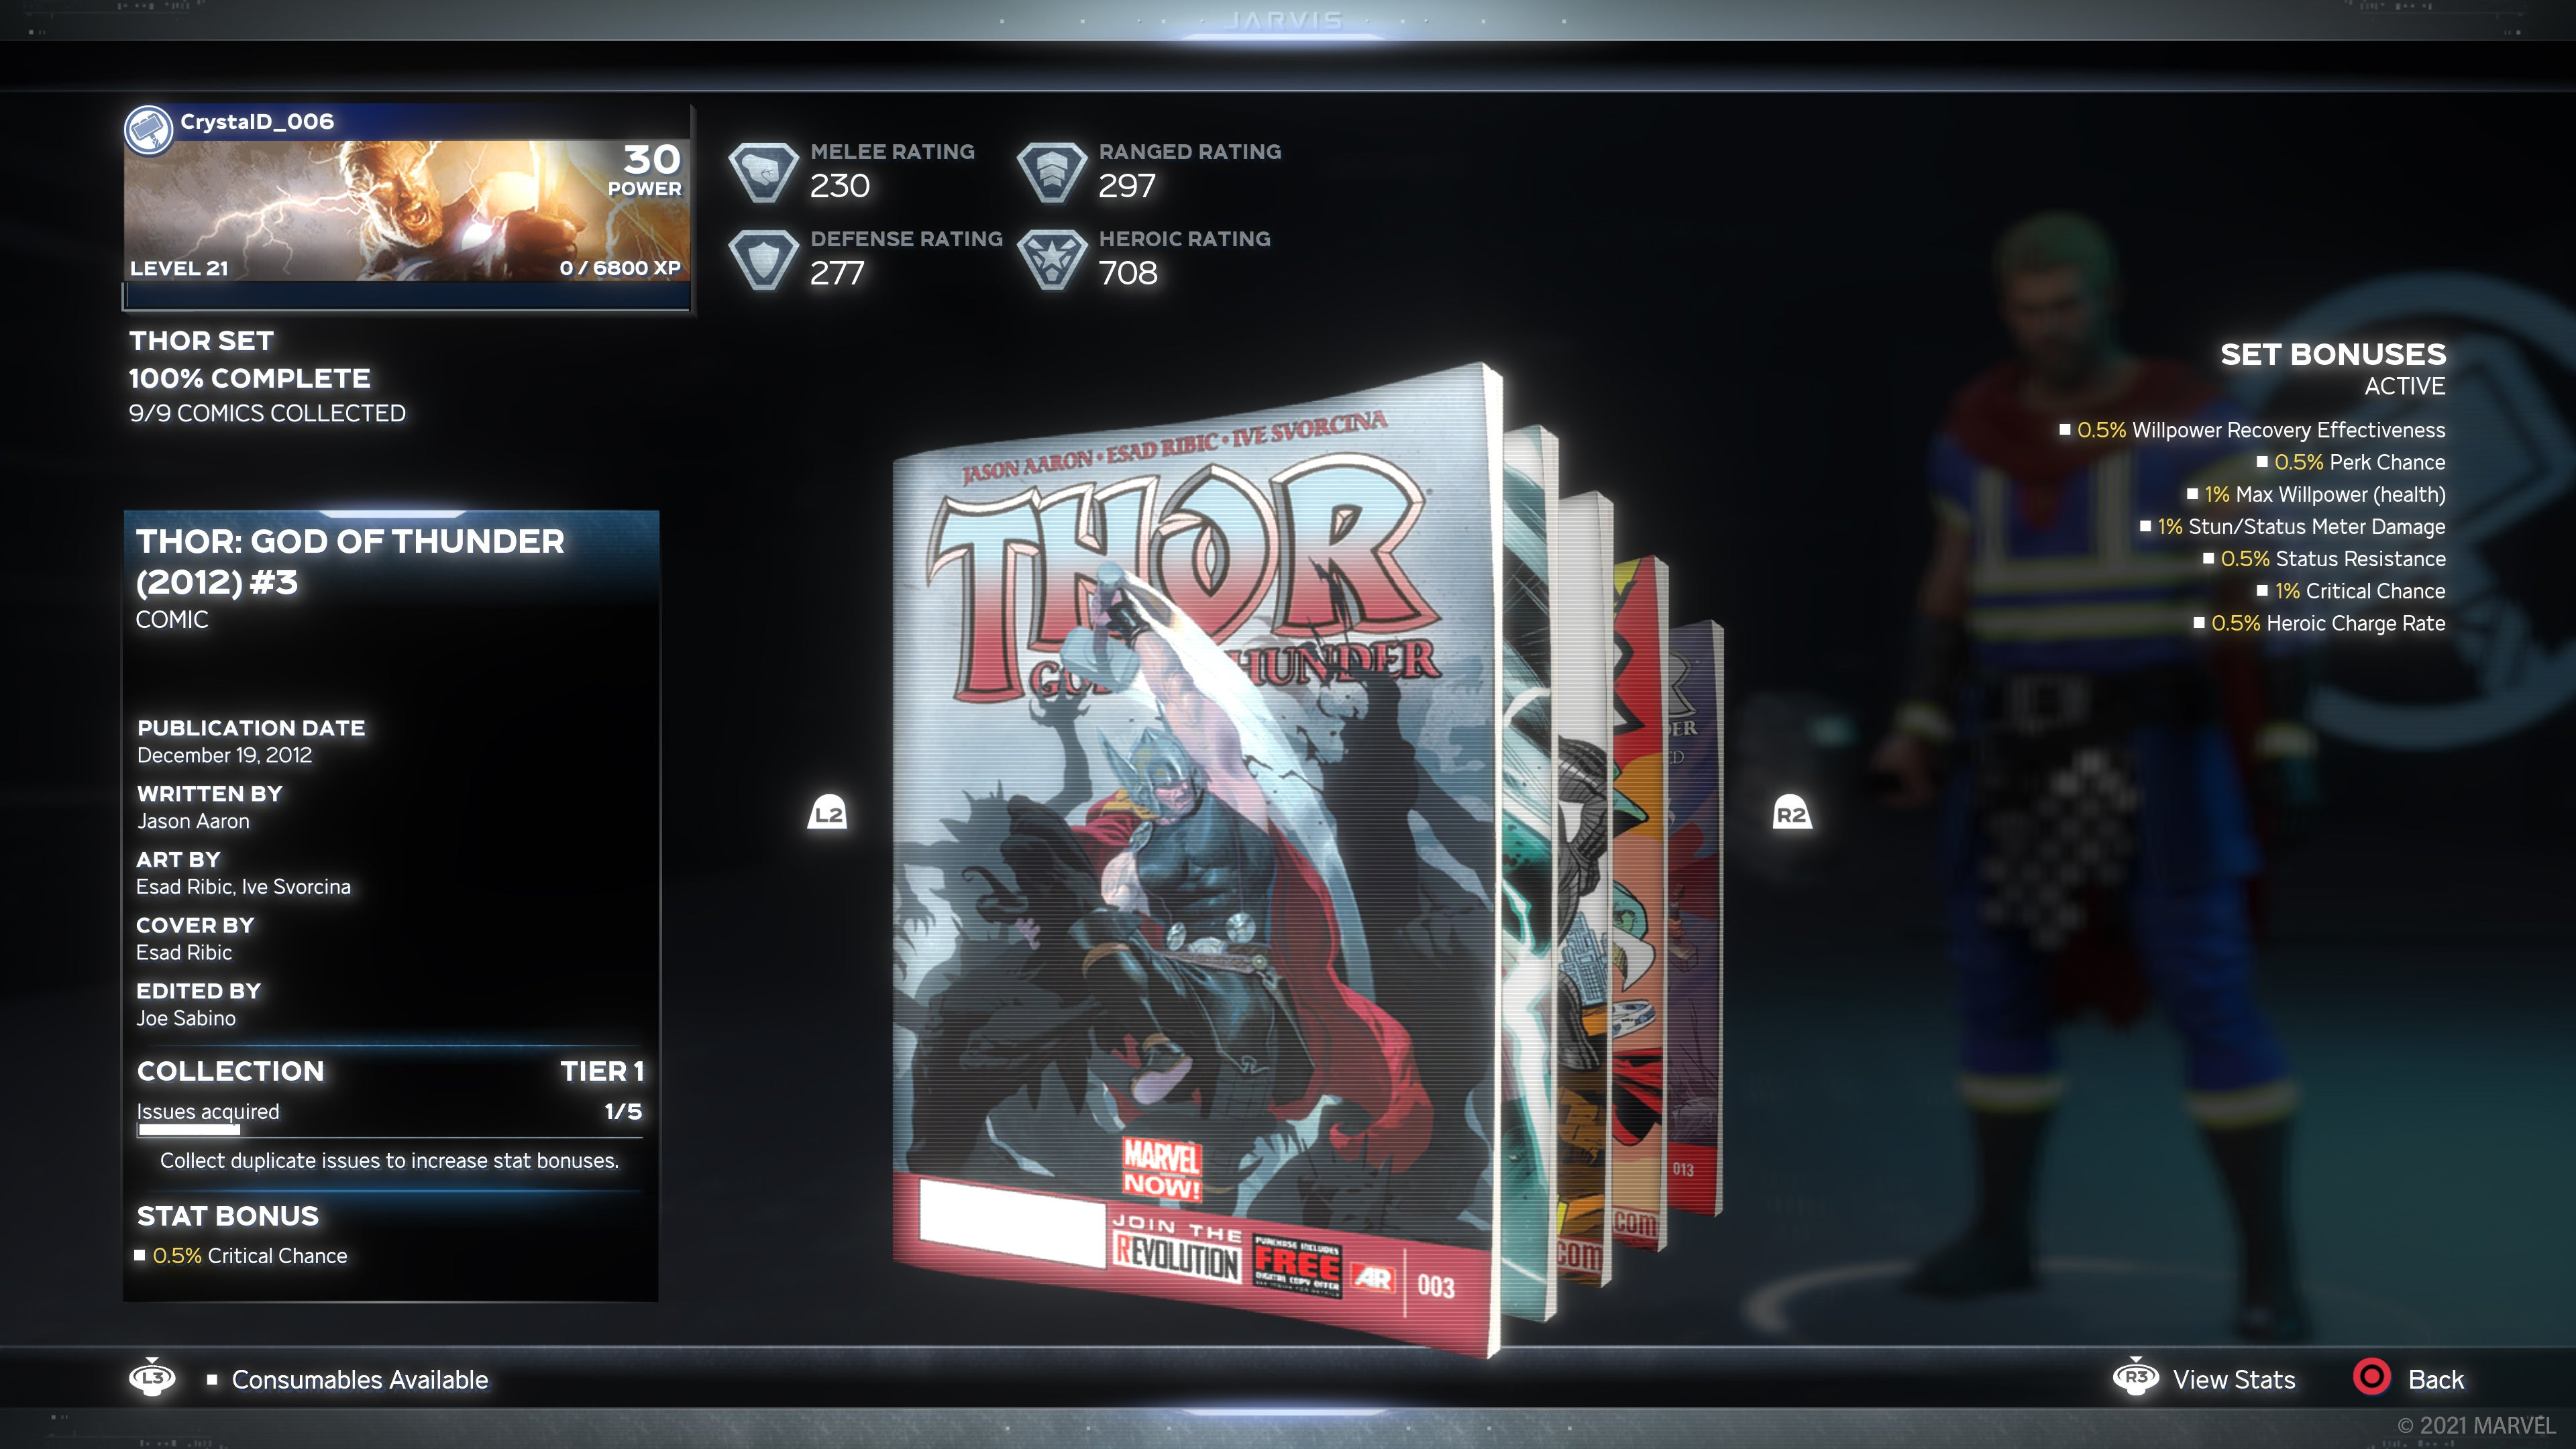 A screenshot of our in-game comic book collectible. This one features Thor, swinging his hammer at his enemies.